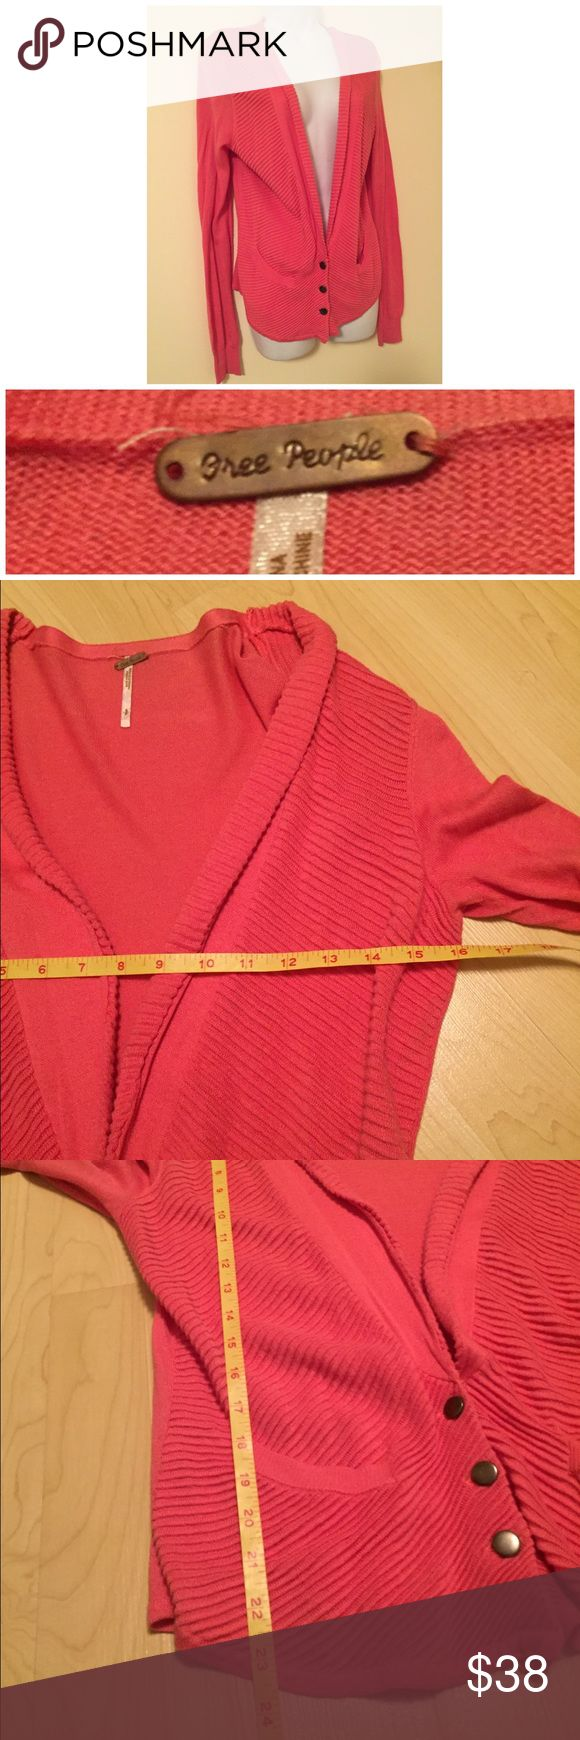 FREE PEOPLE Coral Cardigan Small Excellent condition gently worn with no defects. Coral red / orange. Ribbed textured front and flat back. Free People Sweaters Cardigans